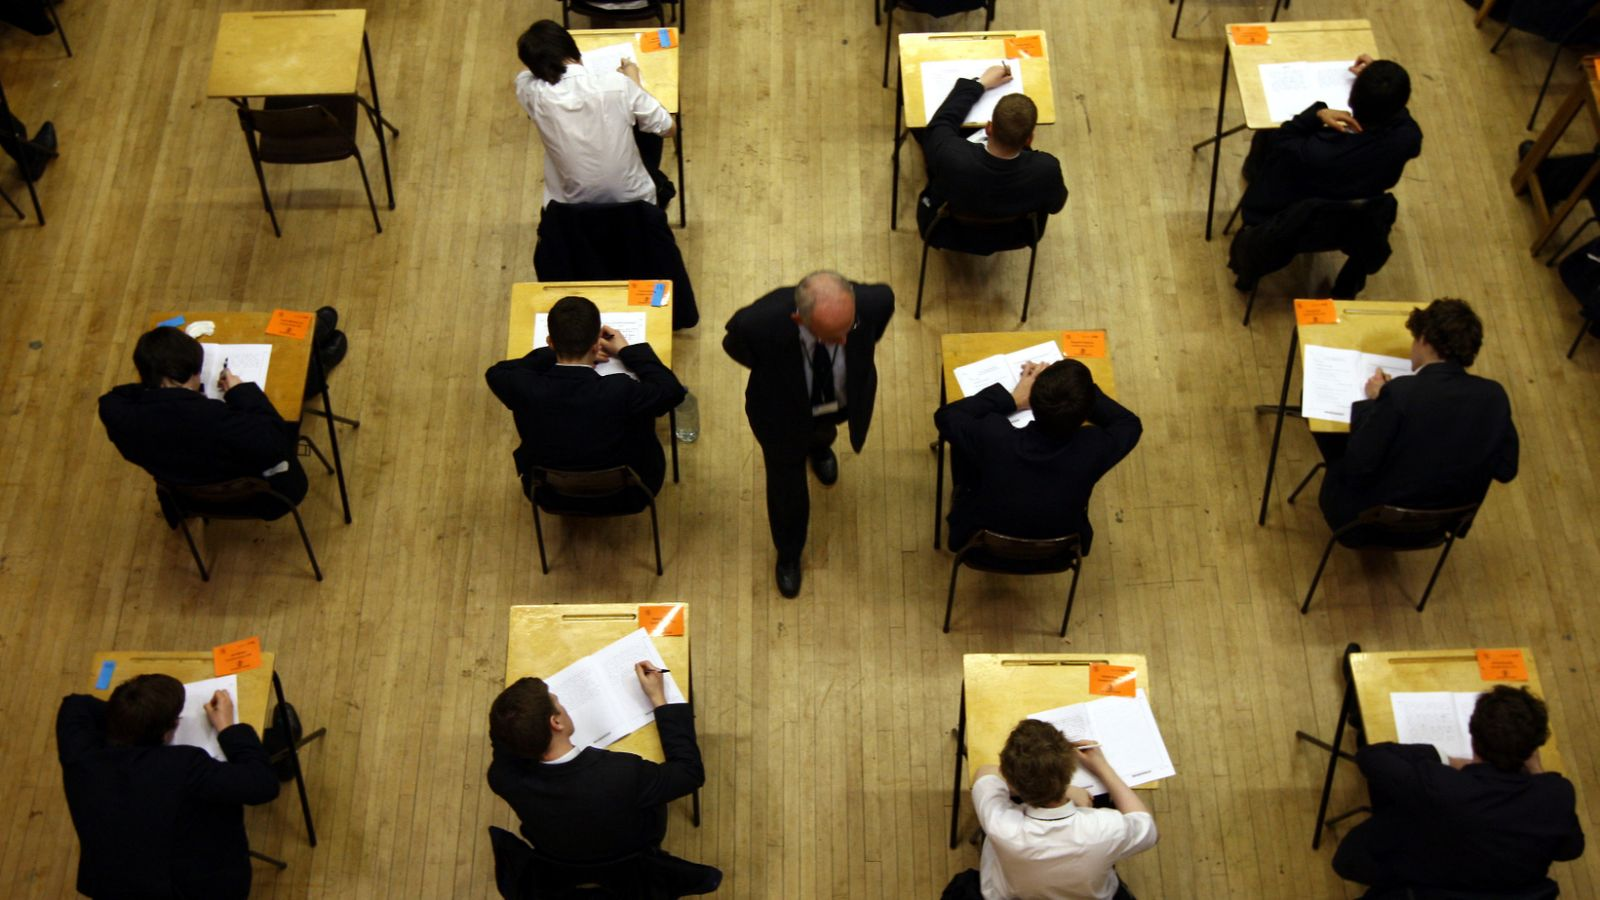 Photo of Head of exams regulator Ofqual quits after A-levels chaos